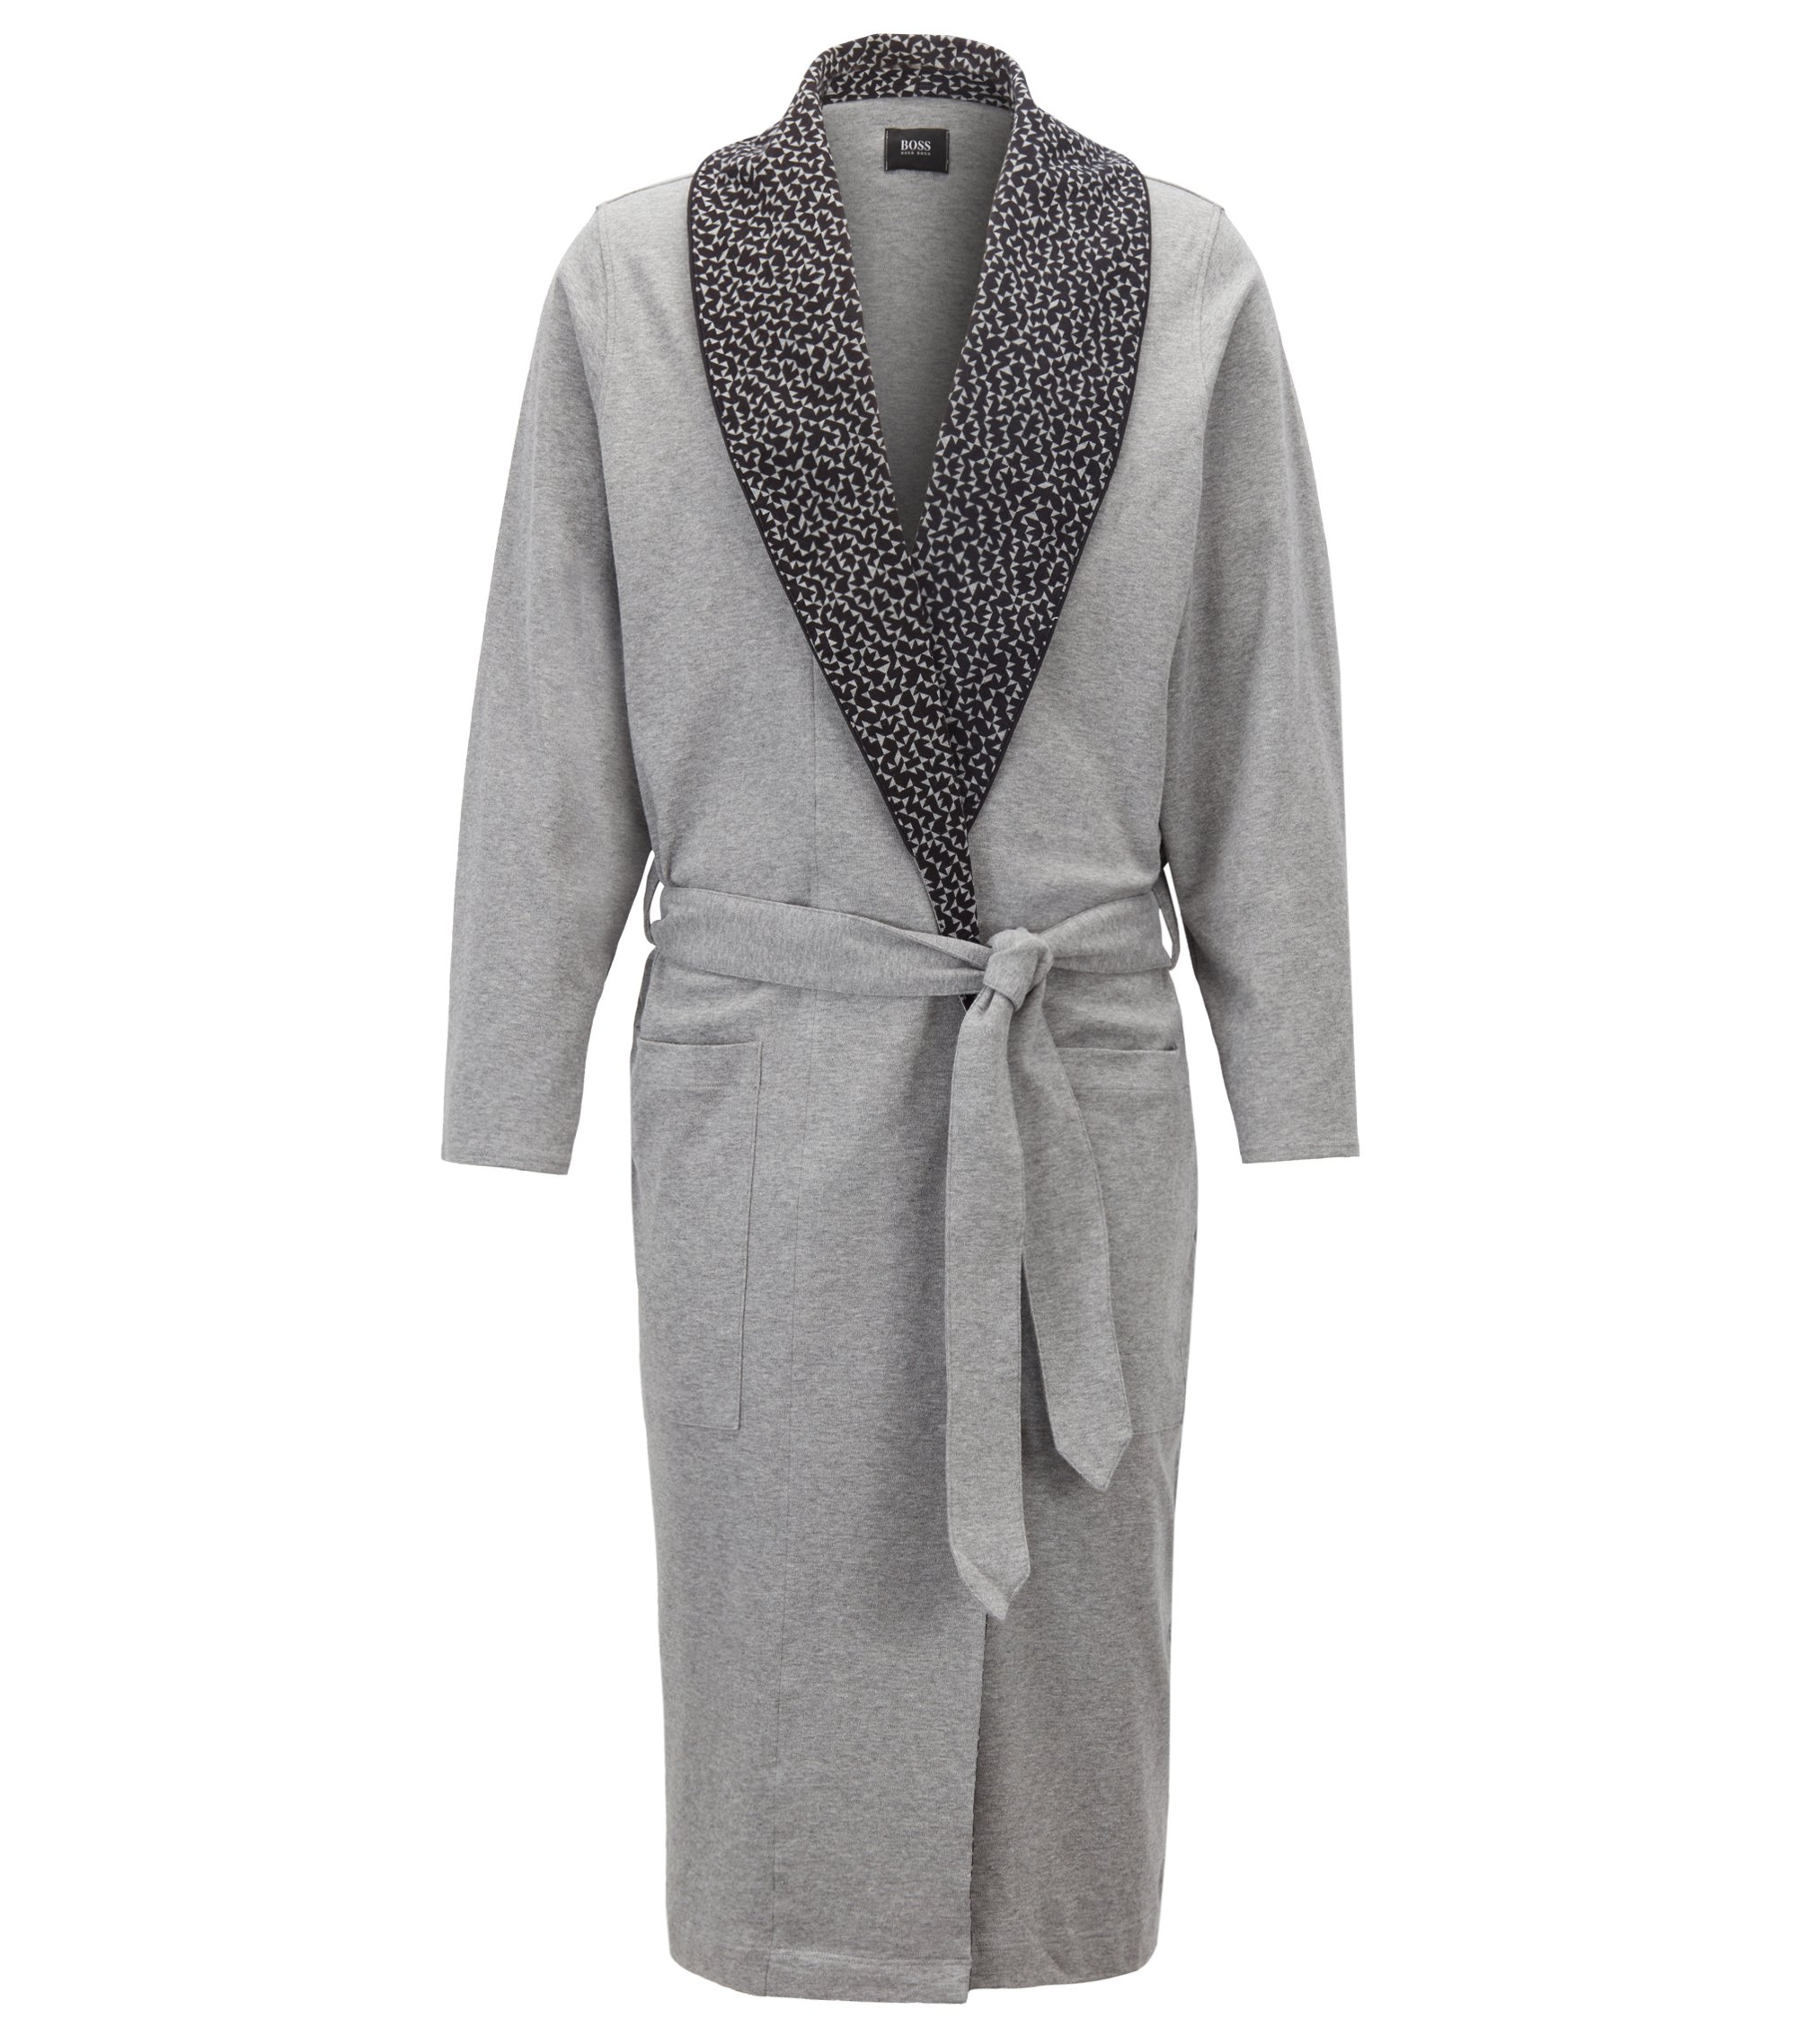 Dressing gown with lapel print inspired by Anni Albers, Grey